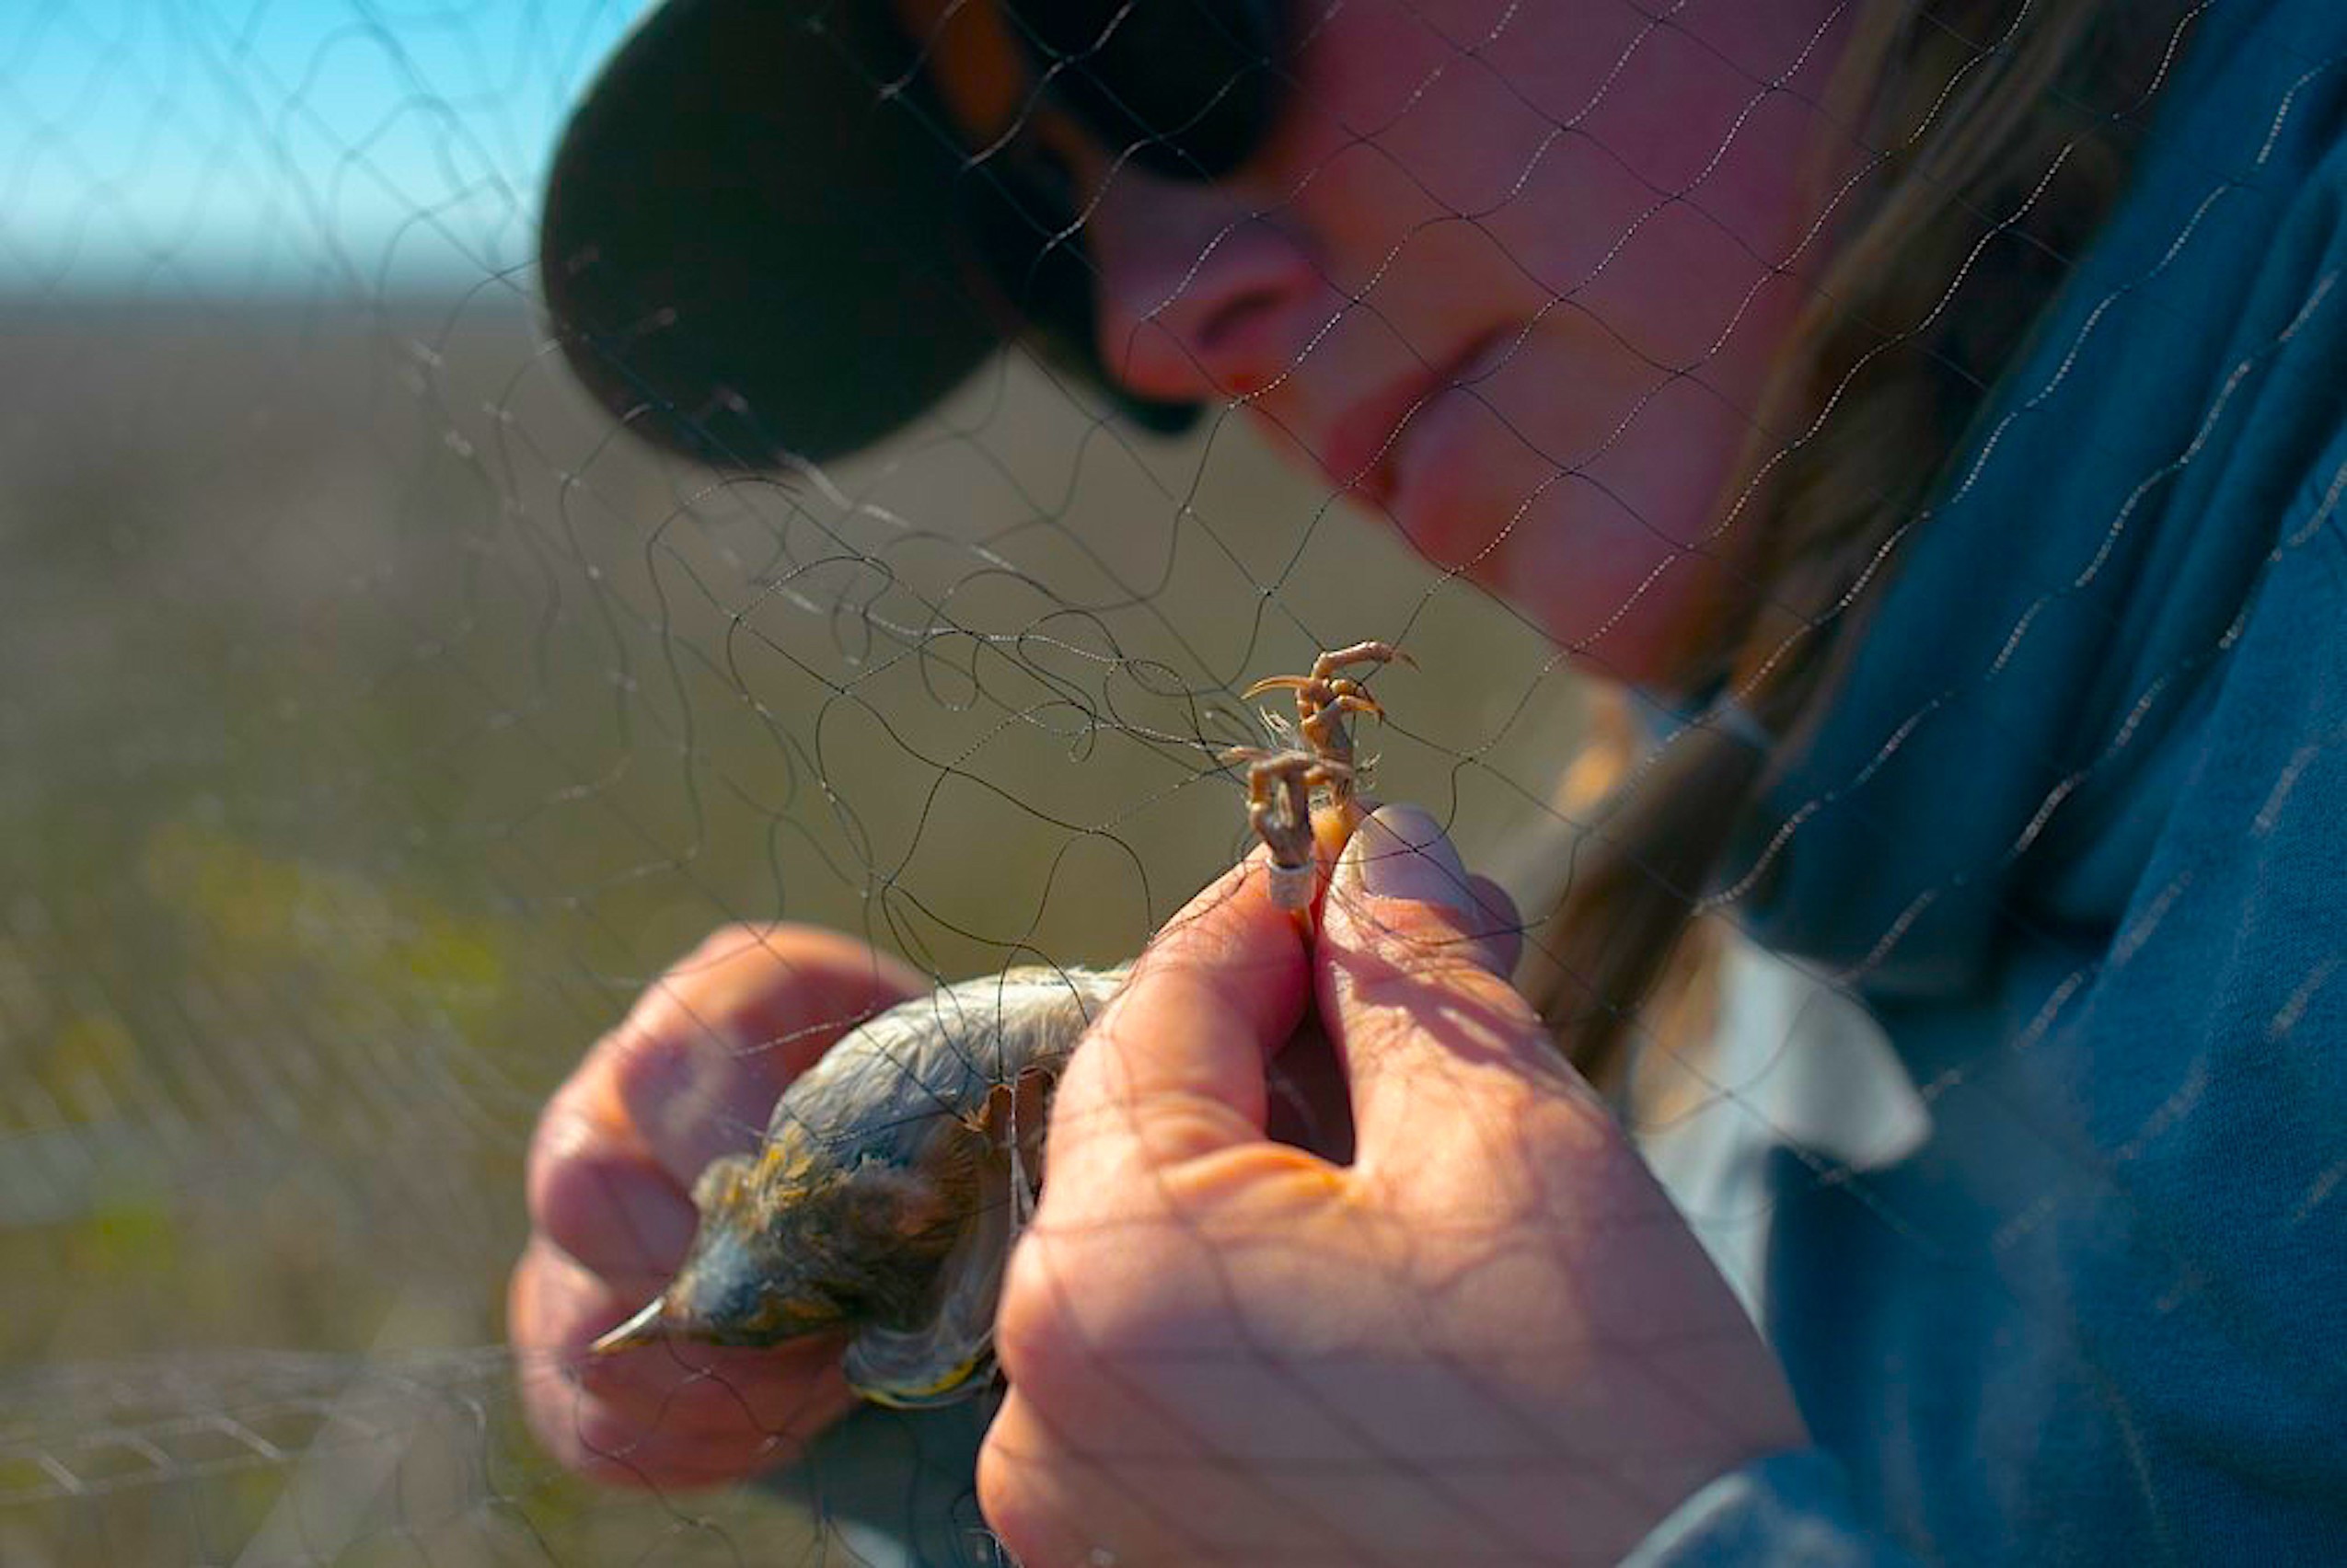 Marae Lindquist carefully frees a sparrow from a marsh net for her research. Credit: Boston Dang